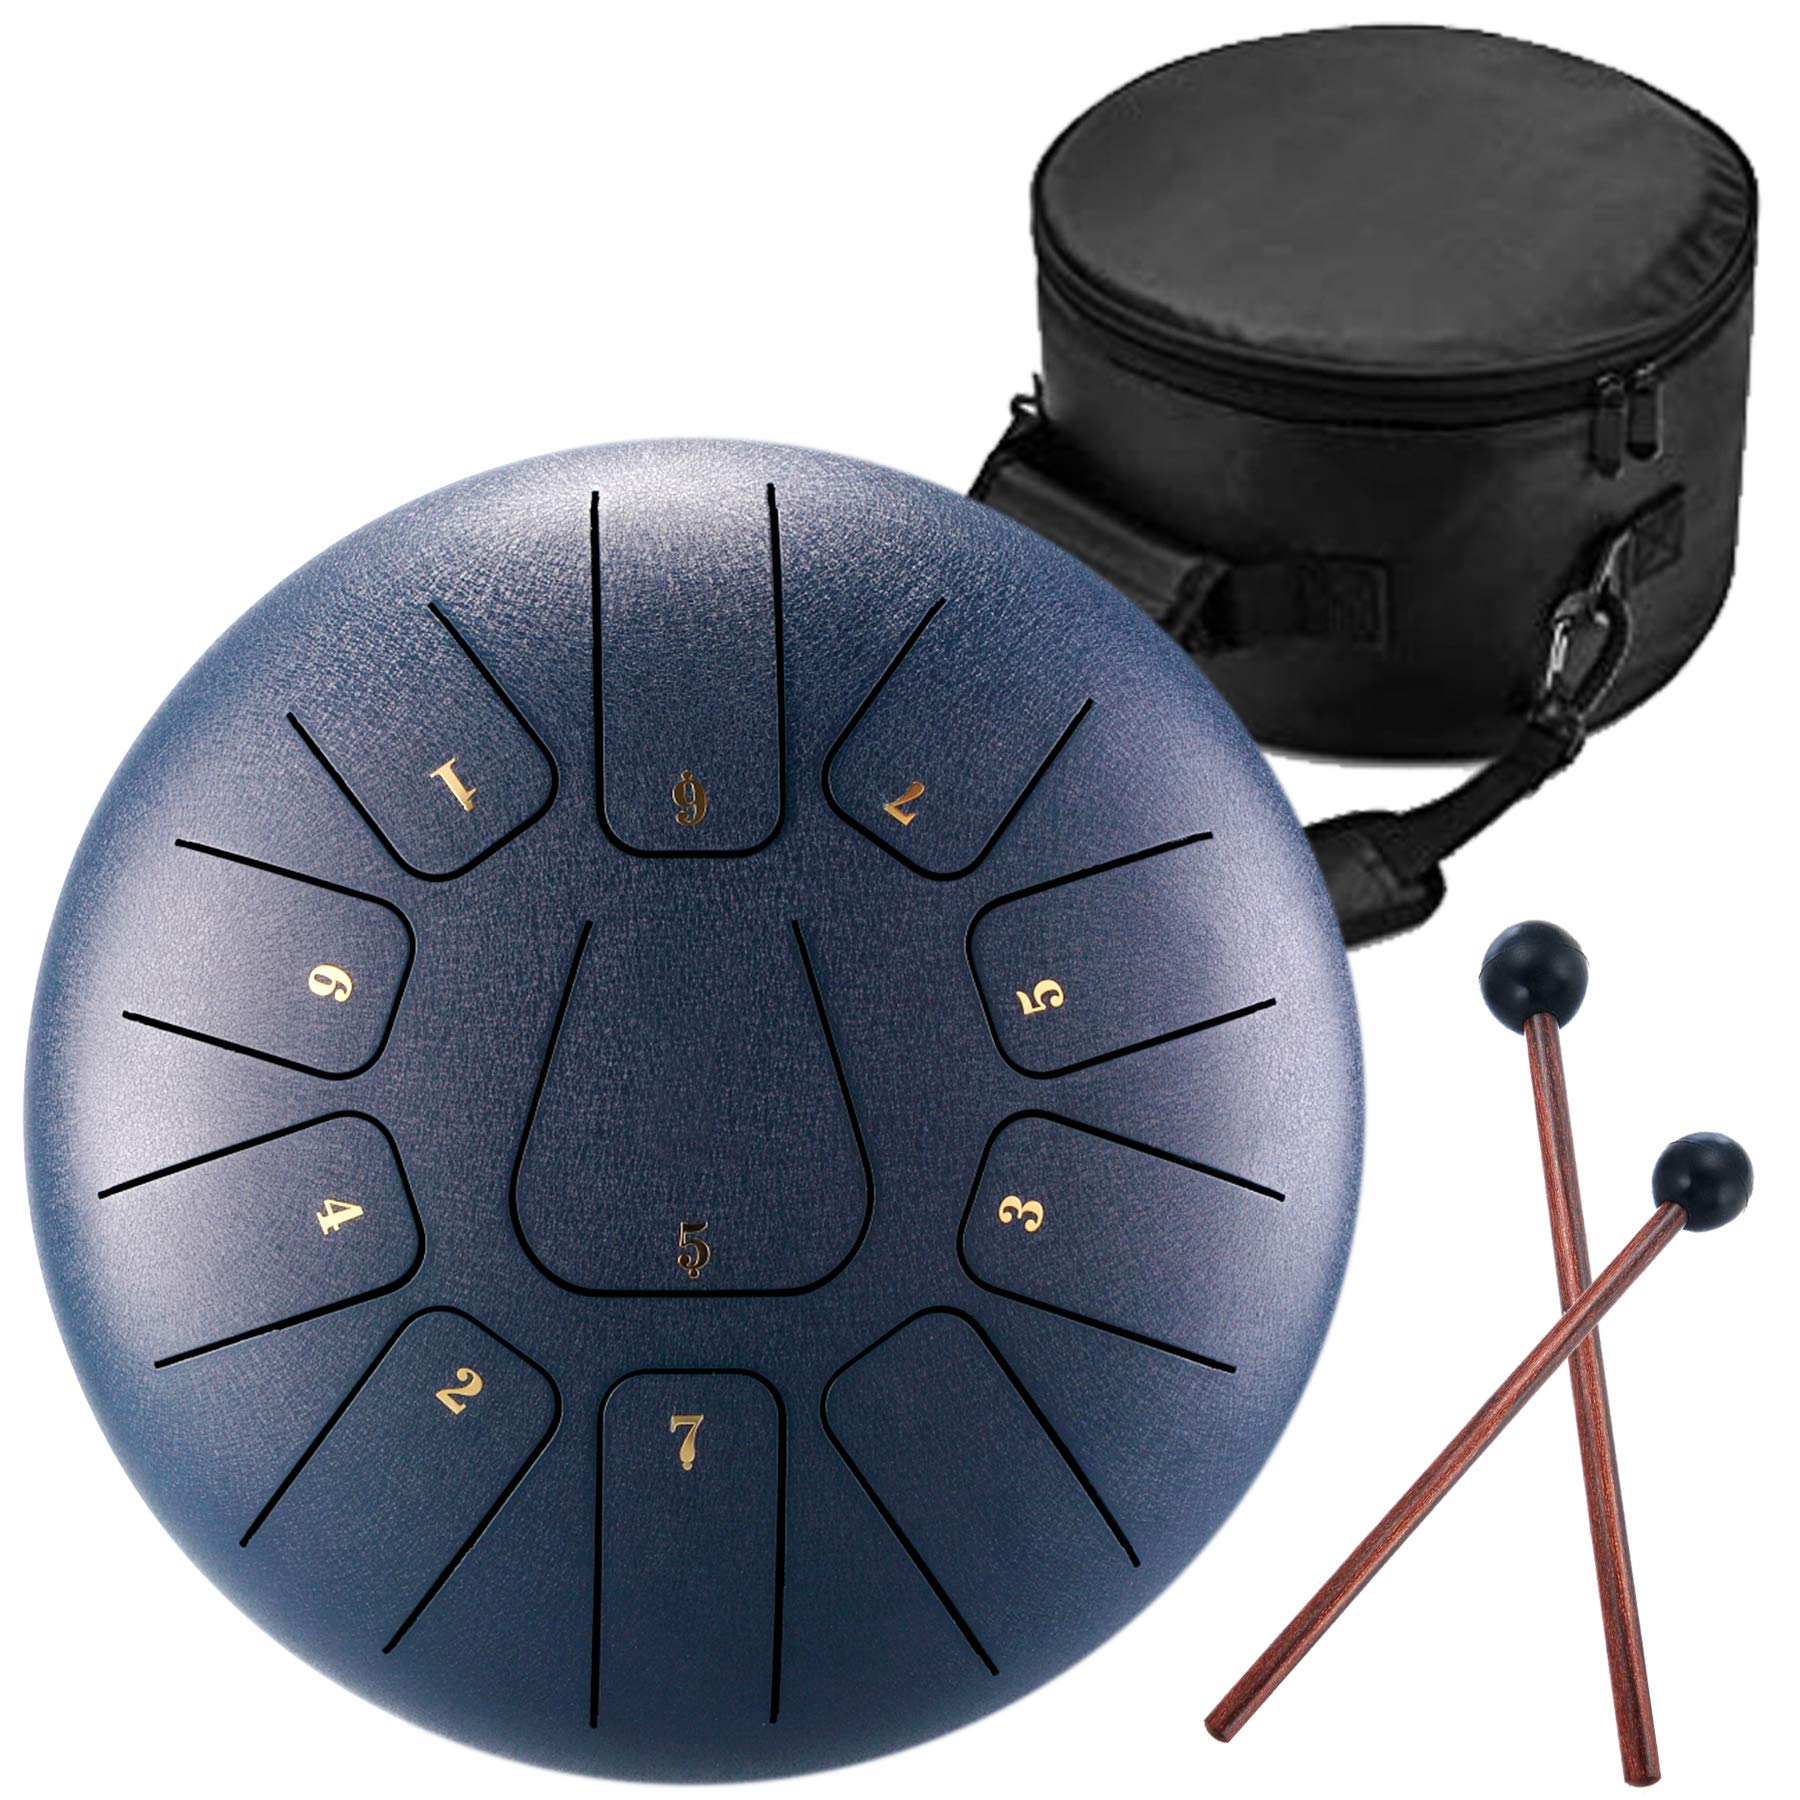 Handpan Tongue Drum 11 Notes 12 Inches Chakra Tank Drum Steel Percussion Hang Drum Instrument with Padded Travel Bag and Mallets Cyan